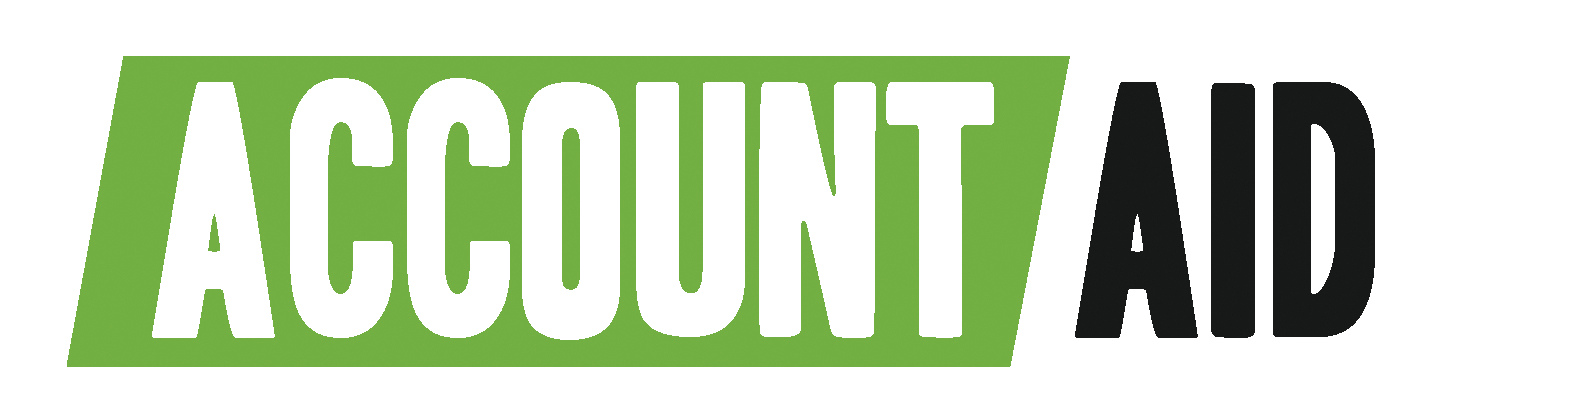 AccountAid Logo TP